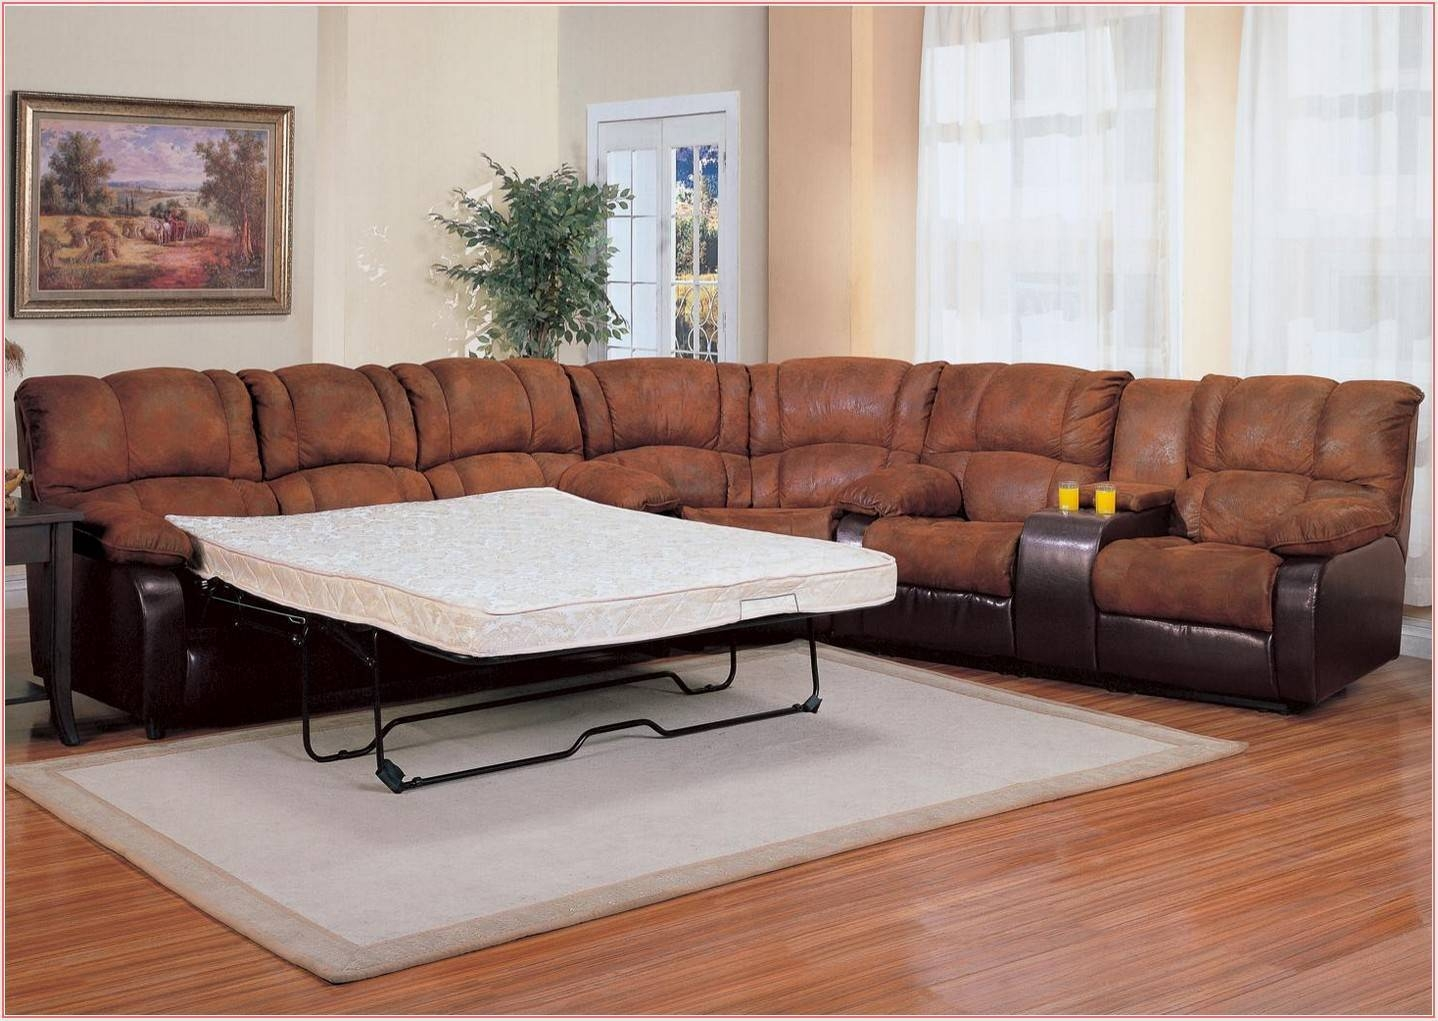 Astonishing C Shaped Sofa Sectional 43 For Your Black And Red For C Shaped Sofas (Photo 14 of 30)